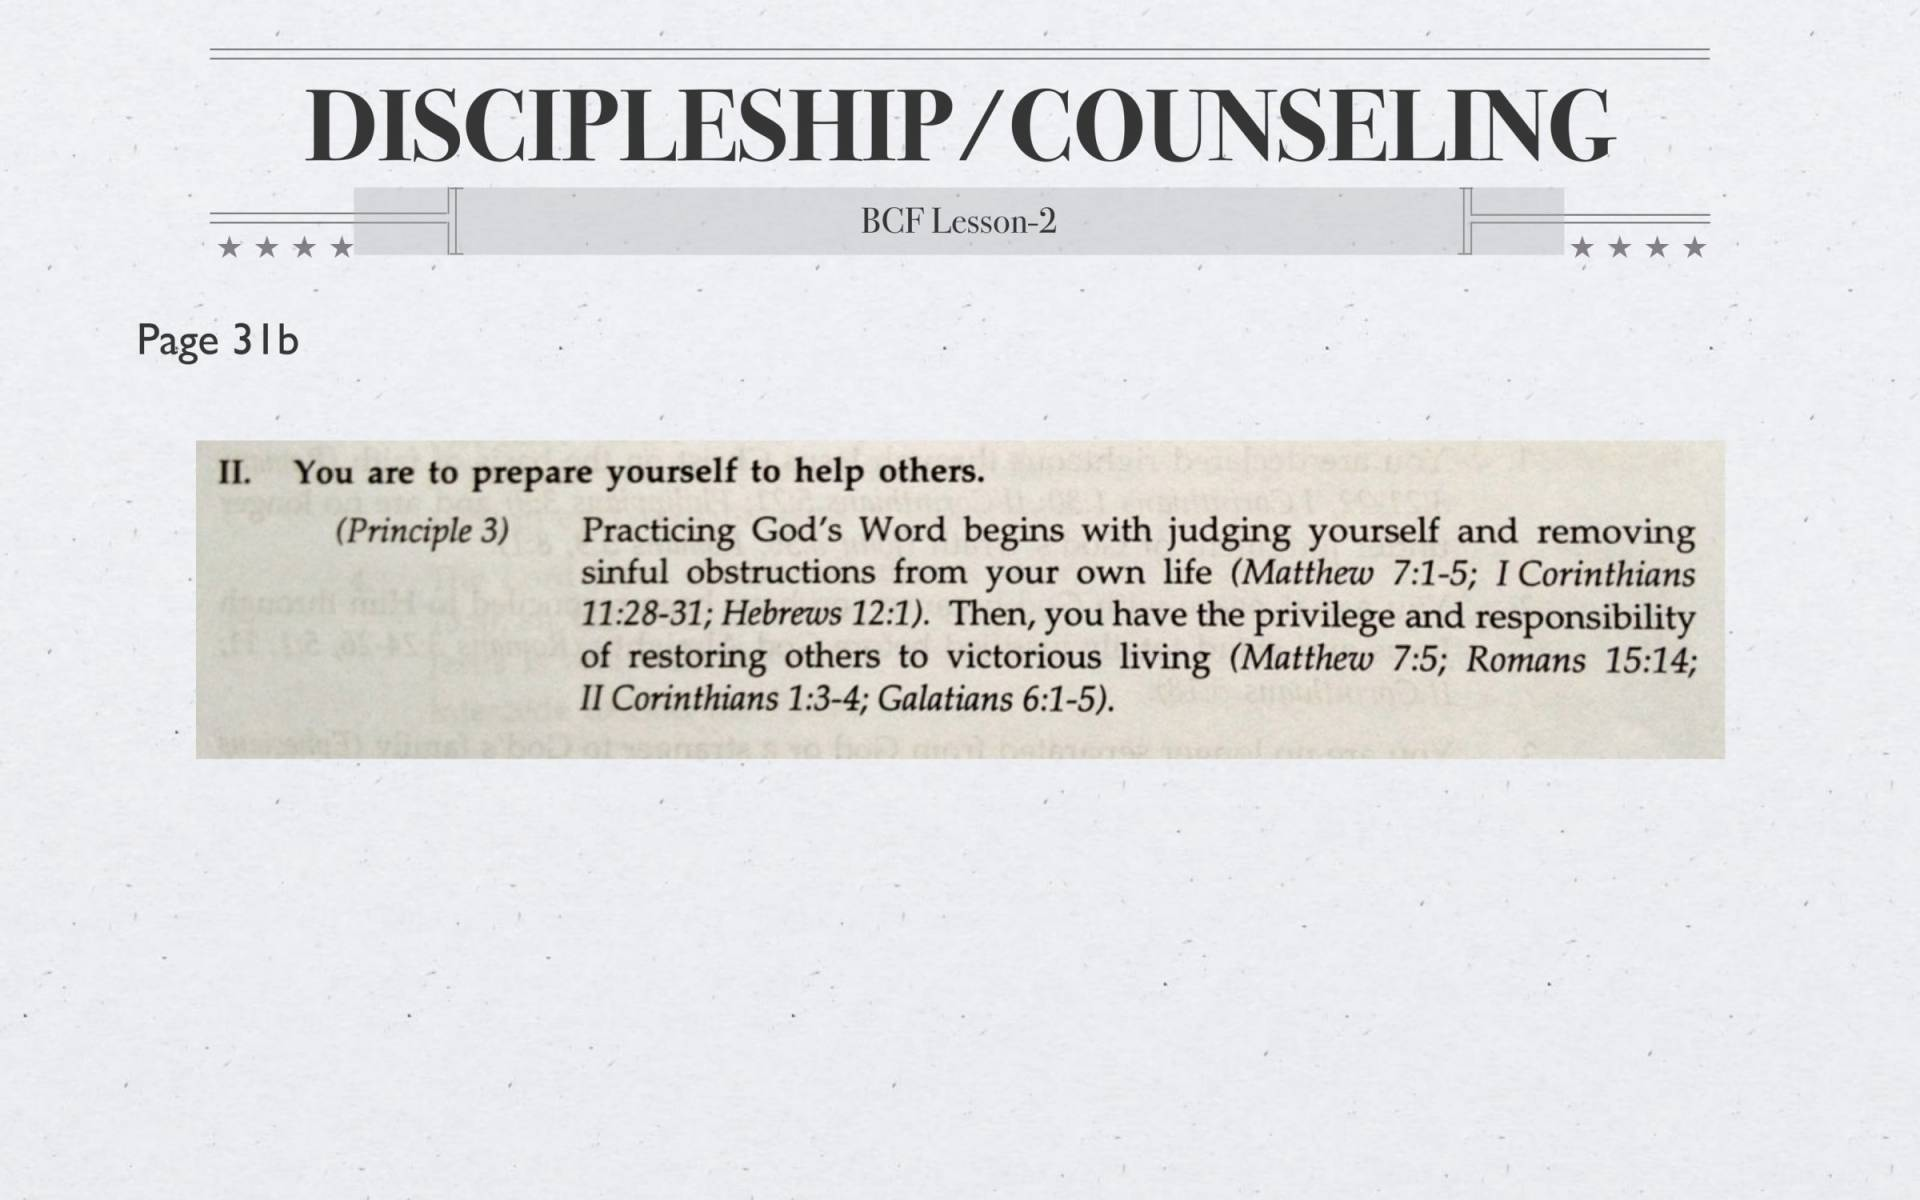 BC&D-04 - How To Focus Your Bible Study Time For Discipleship & Counseling-14